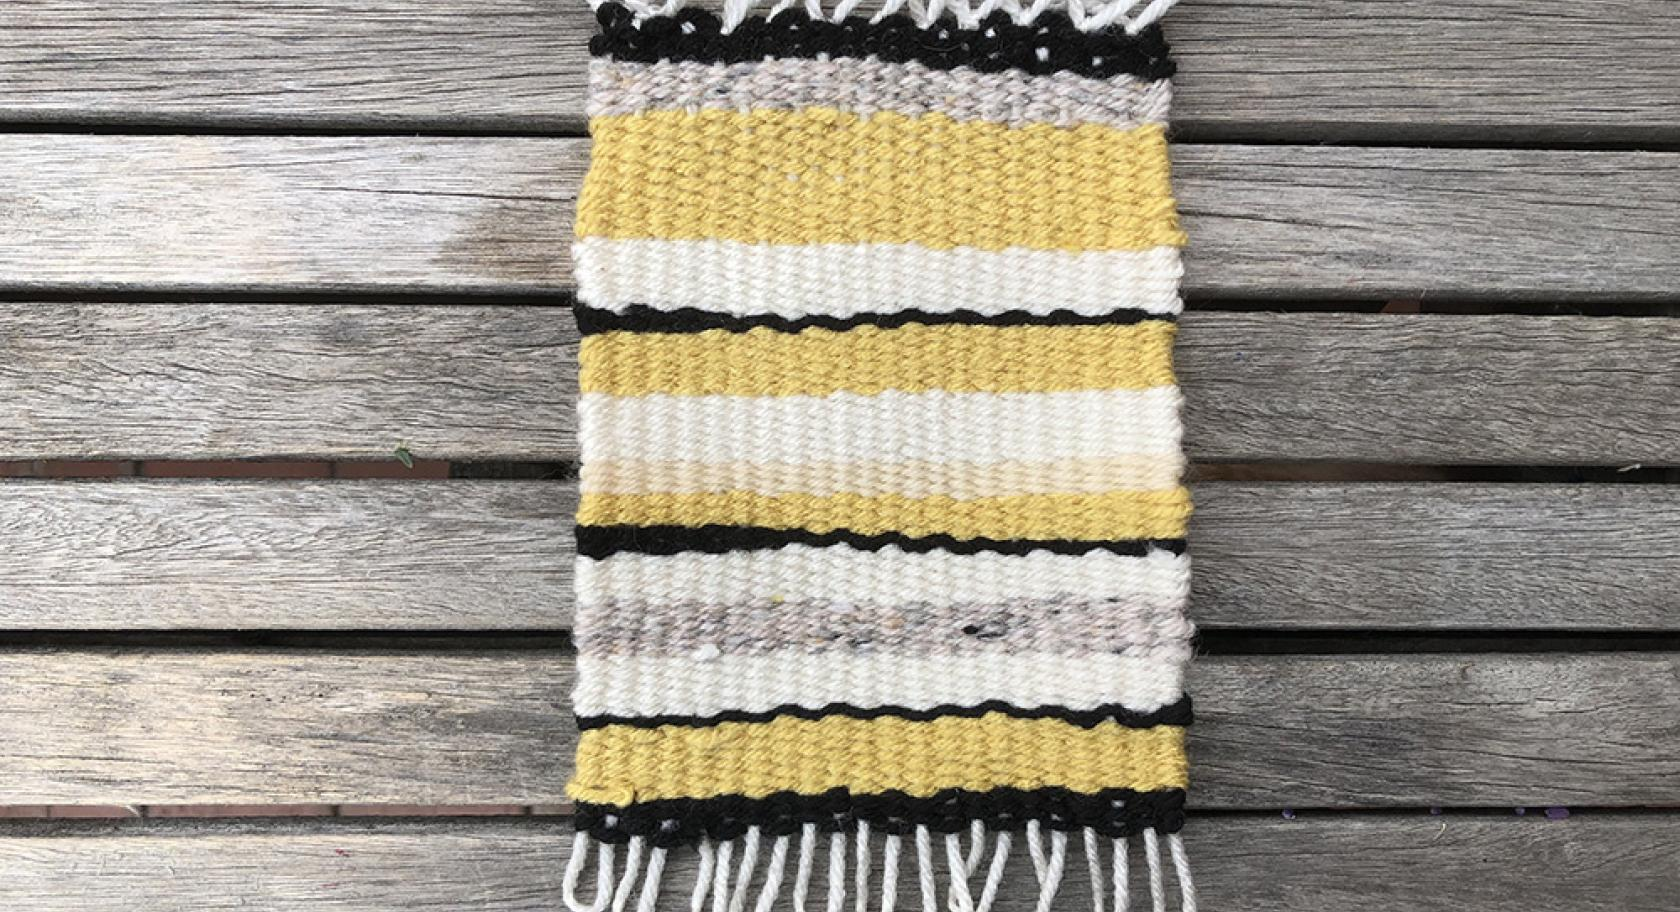 Handmade woven rug made with yellow, gray, white, and black yarn